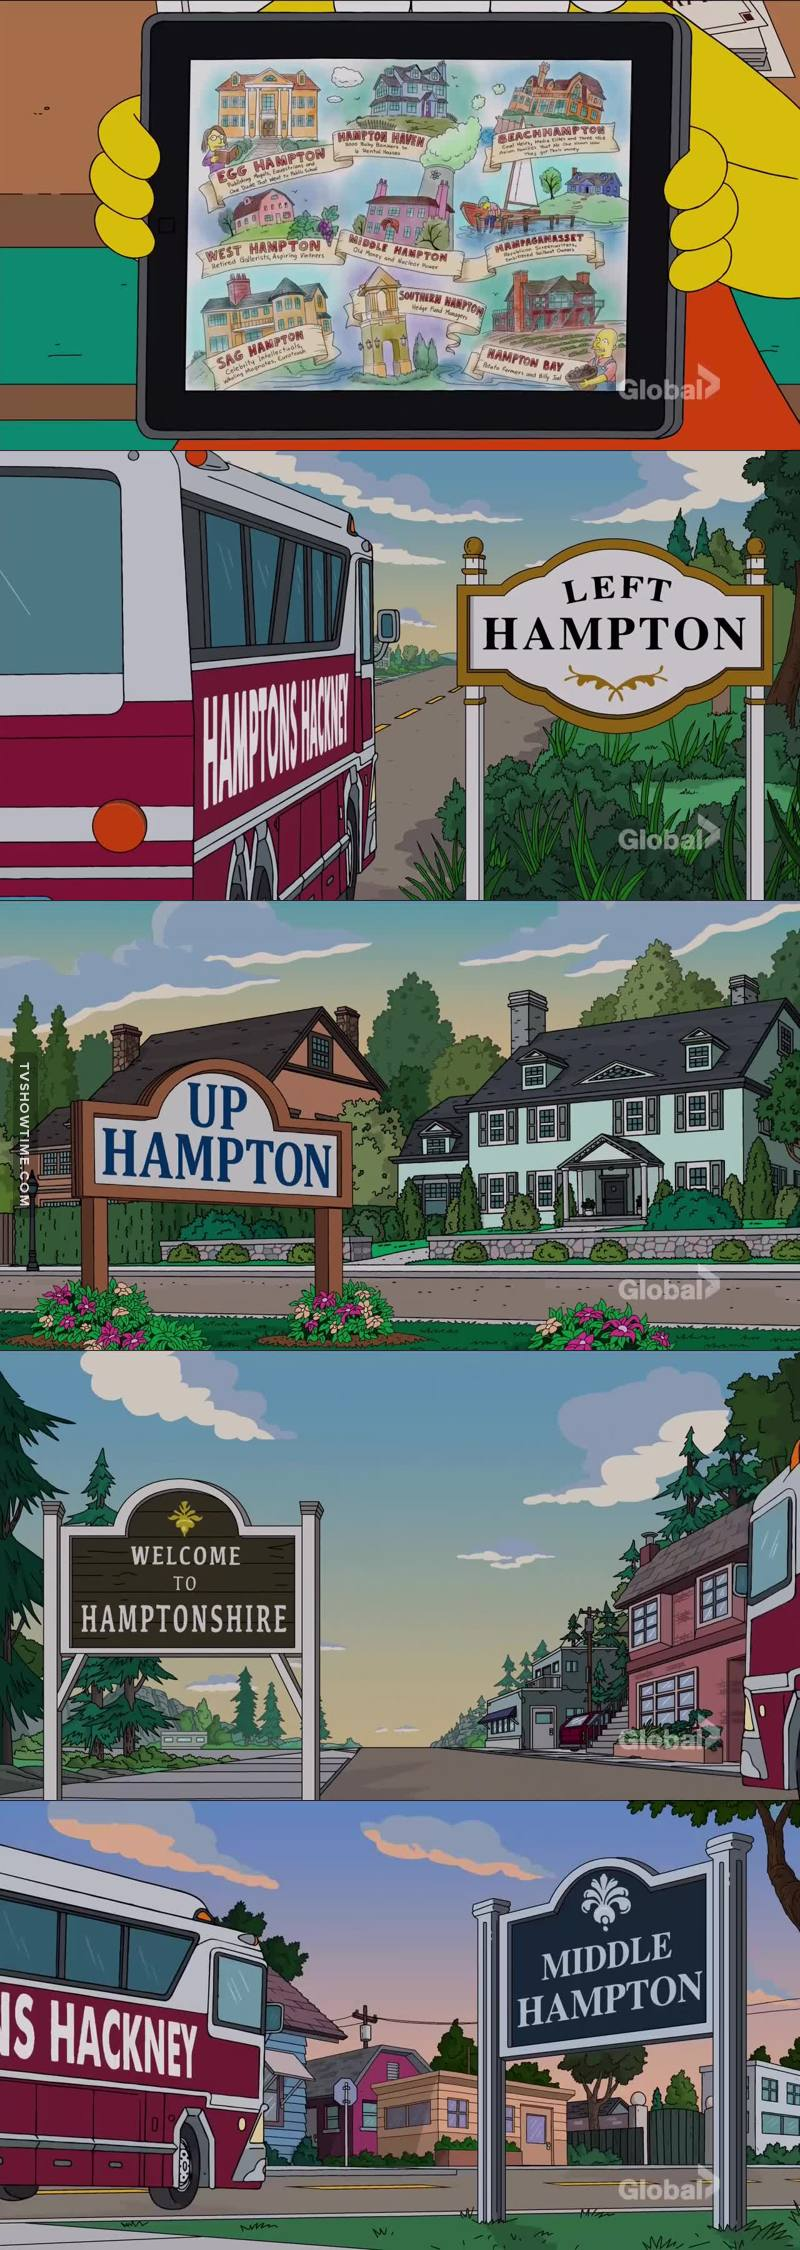 The Hamptons everyone!!!